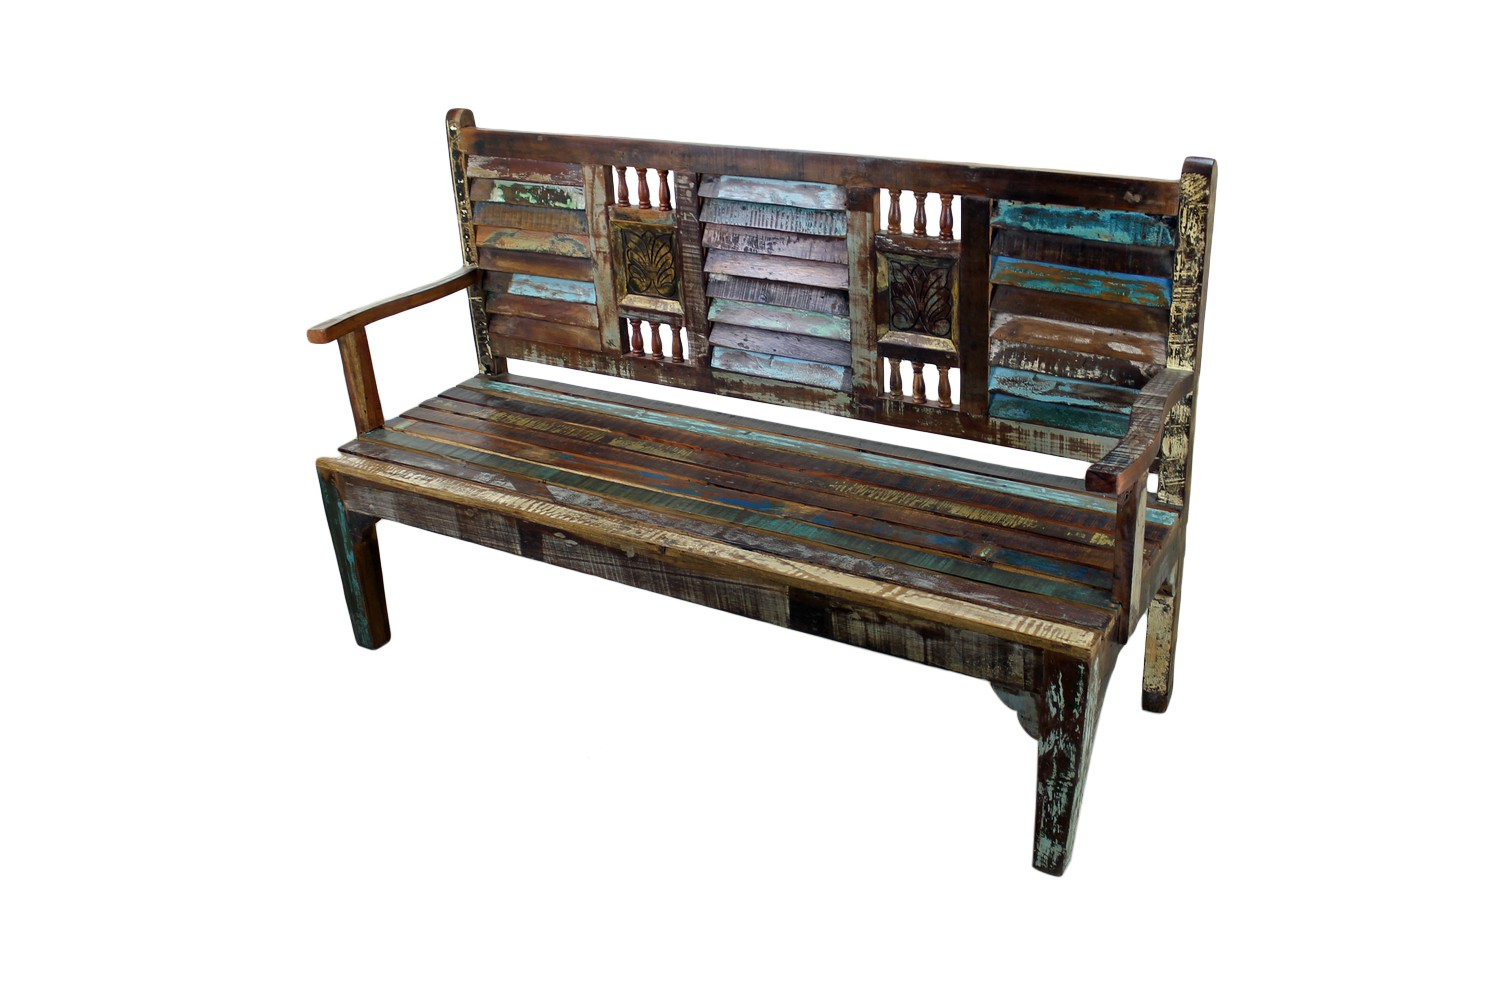 Rustic Wood Chairs Mexican Bench Mexican Rustic Furniture And Home Decor